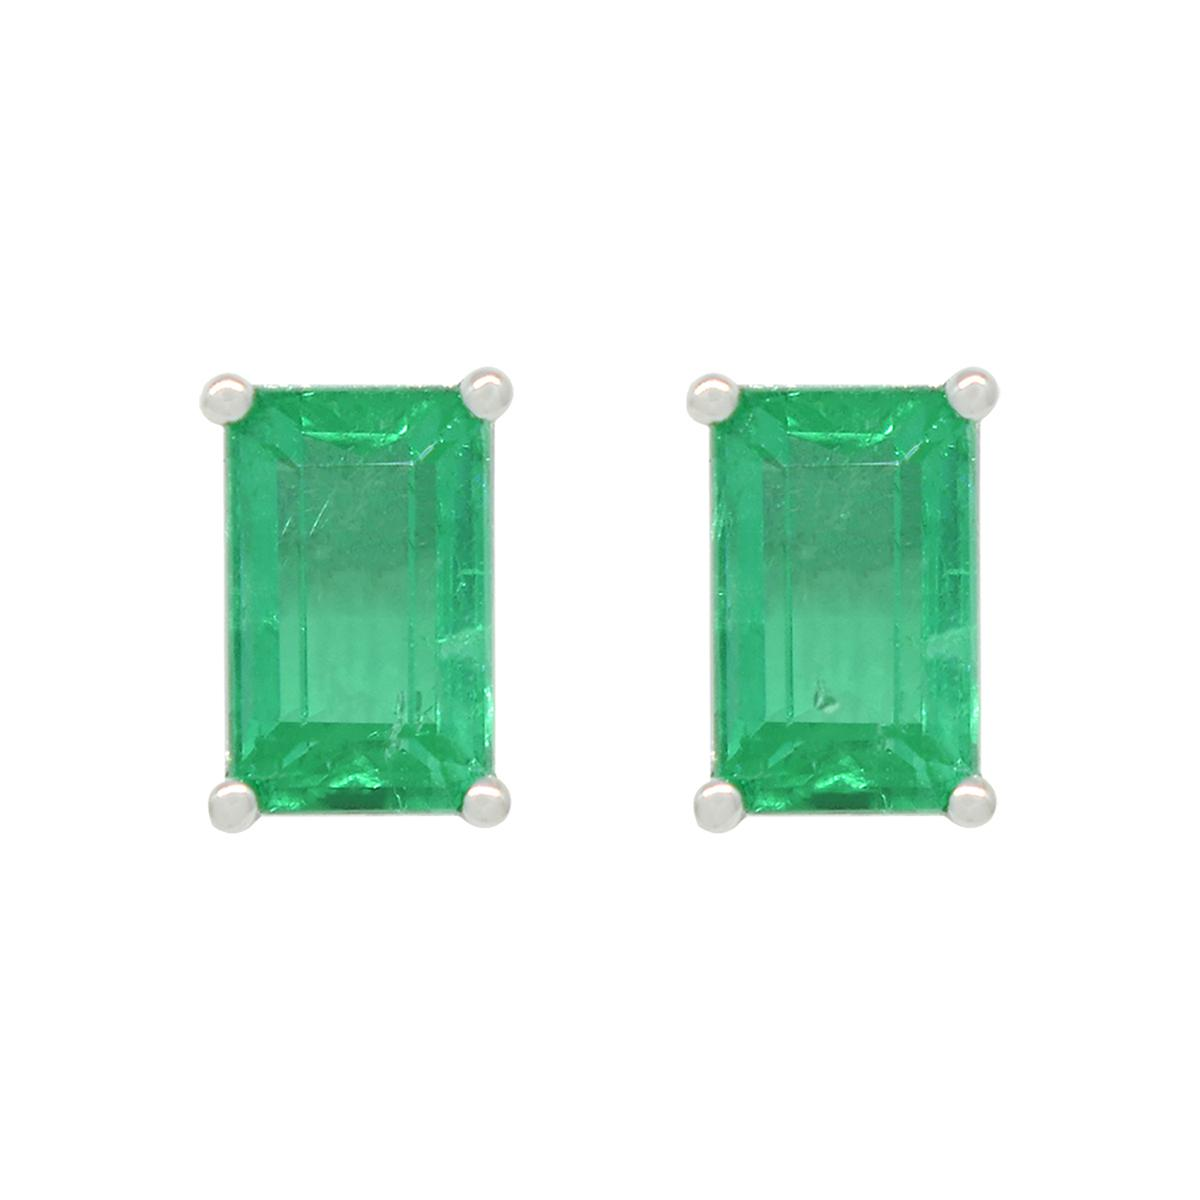 rectangular-stud-earrings-with-emerald-cut-emeralds-in-18k-white-gold